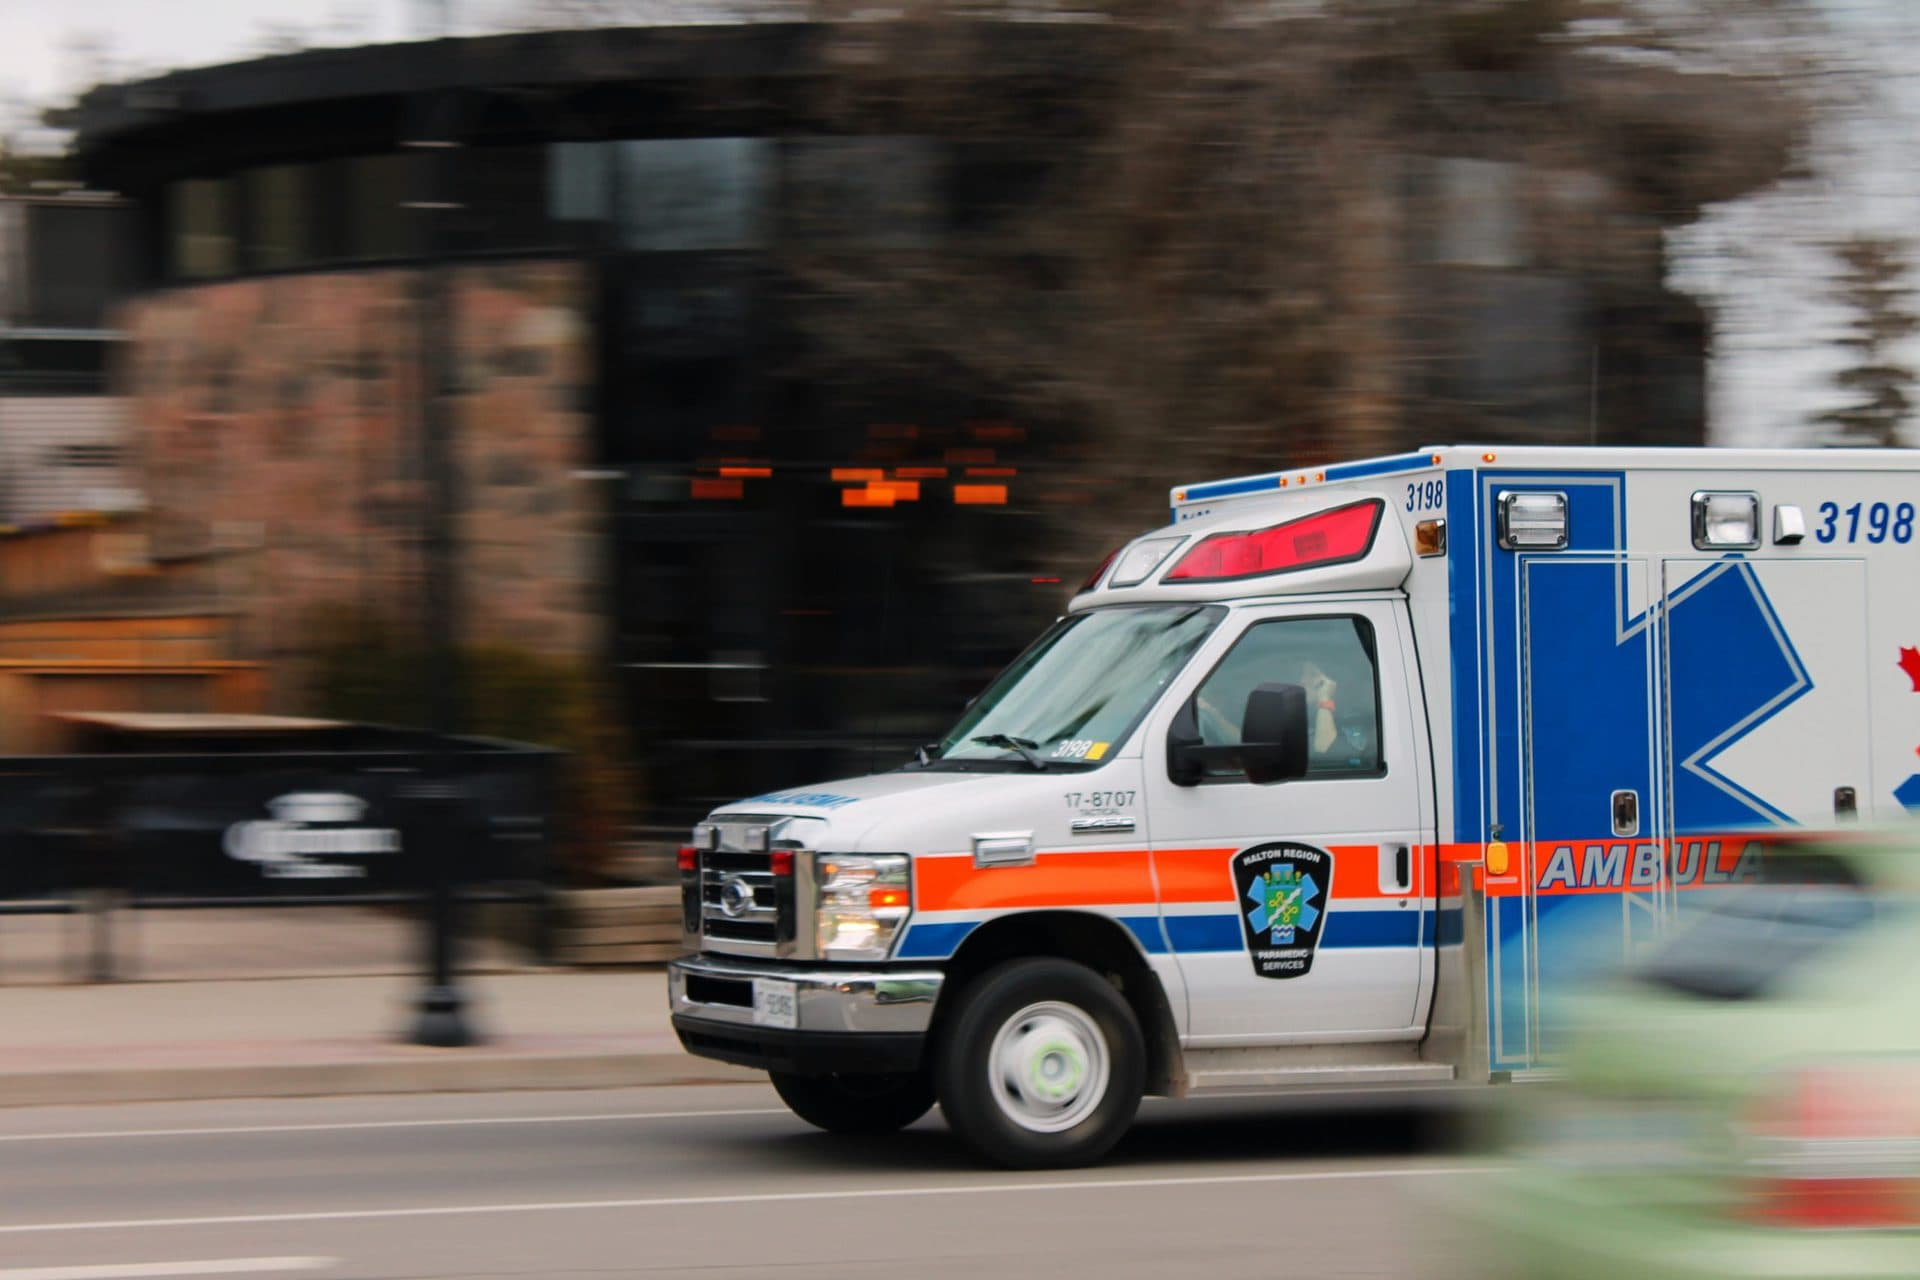 Ambulance Truck Driving Down A Street